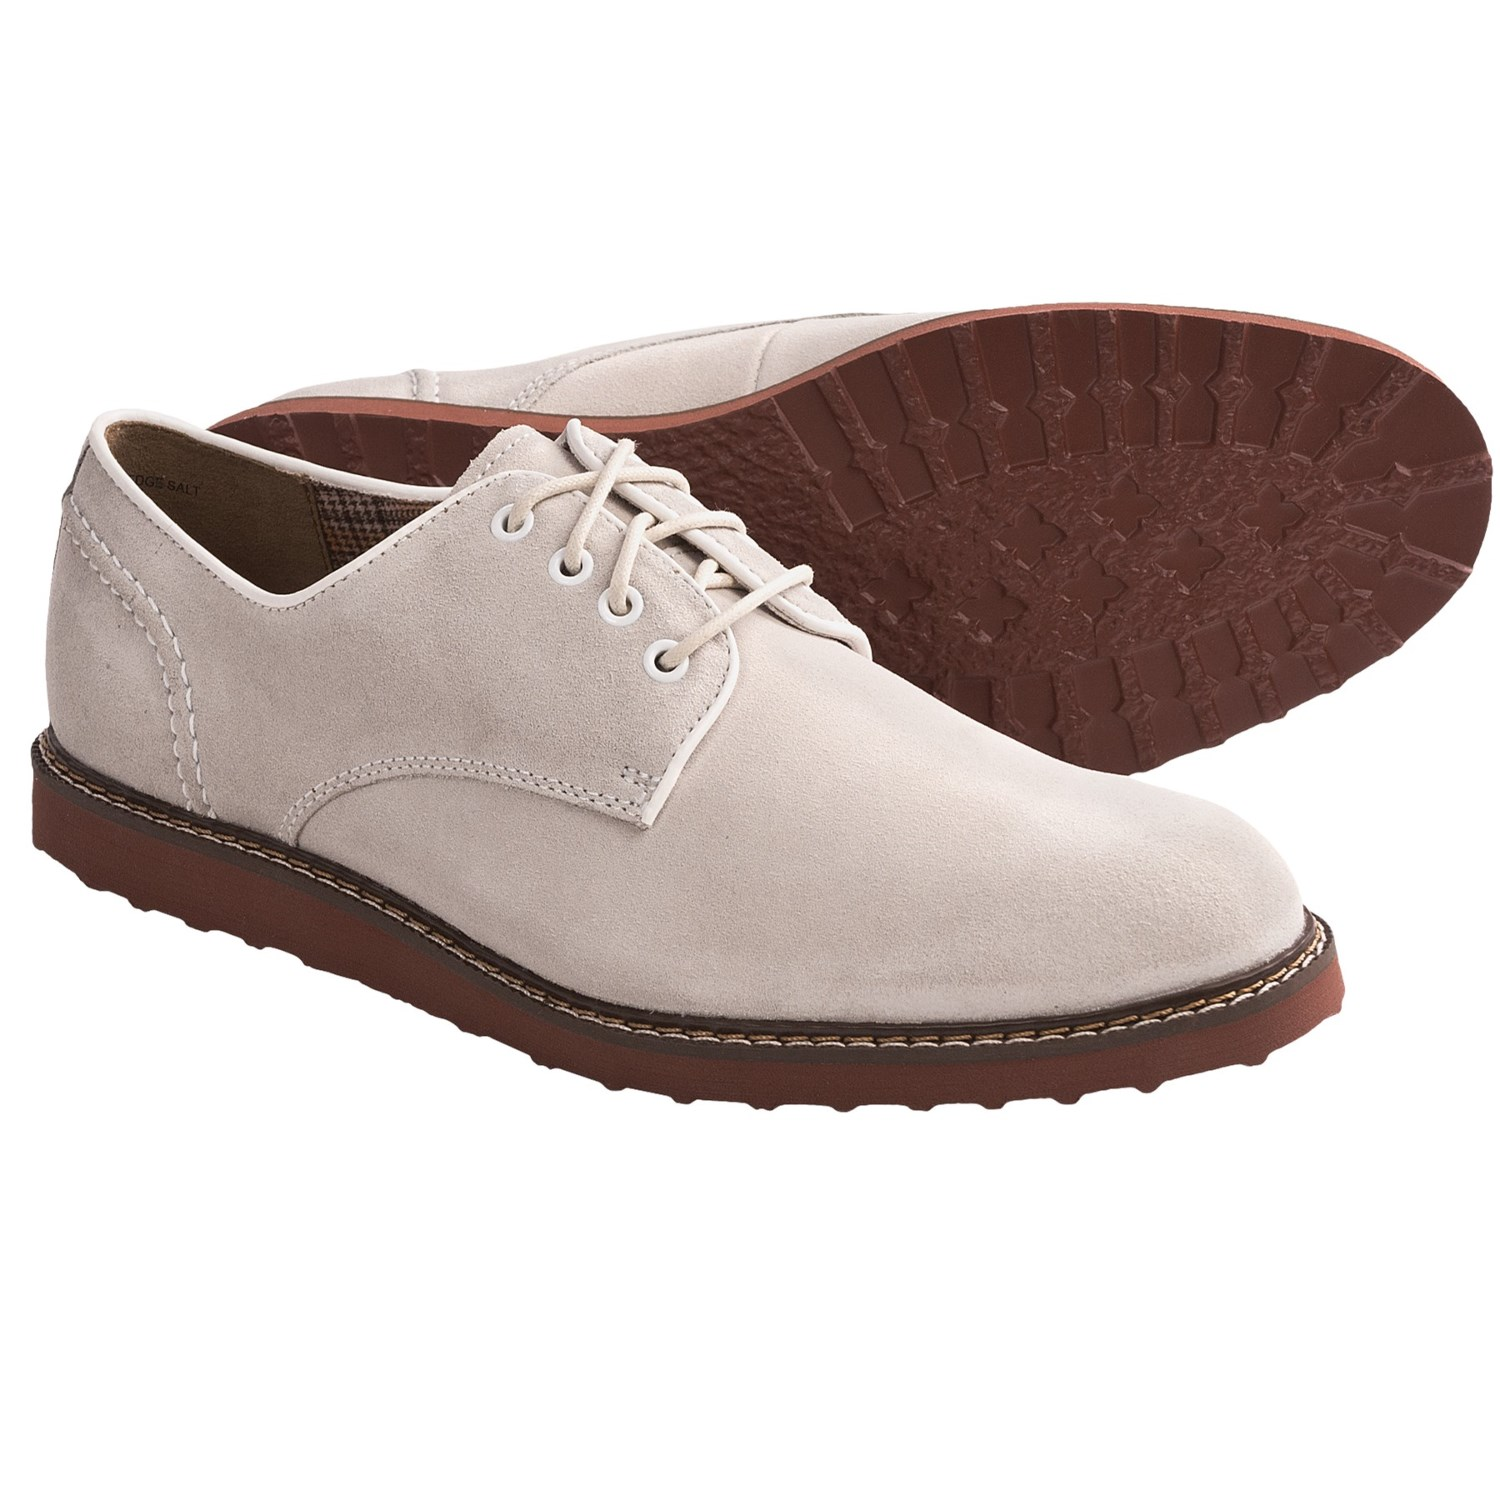 Hush Puppies Derby Wedge Shoes - Suede (For Men) - Save 41%